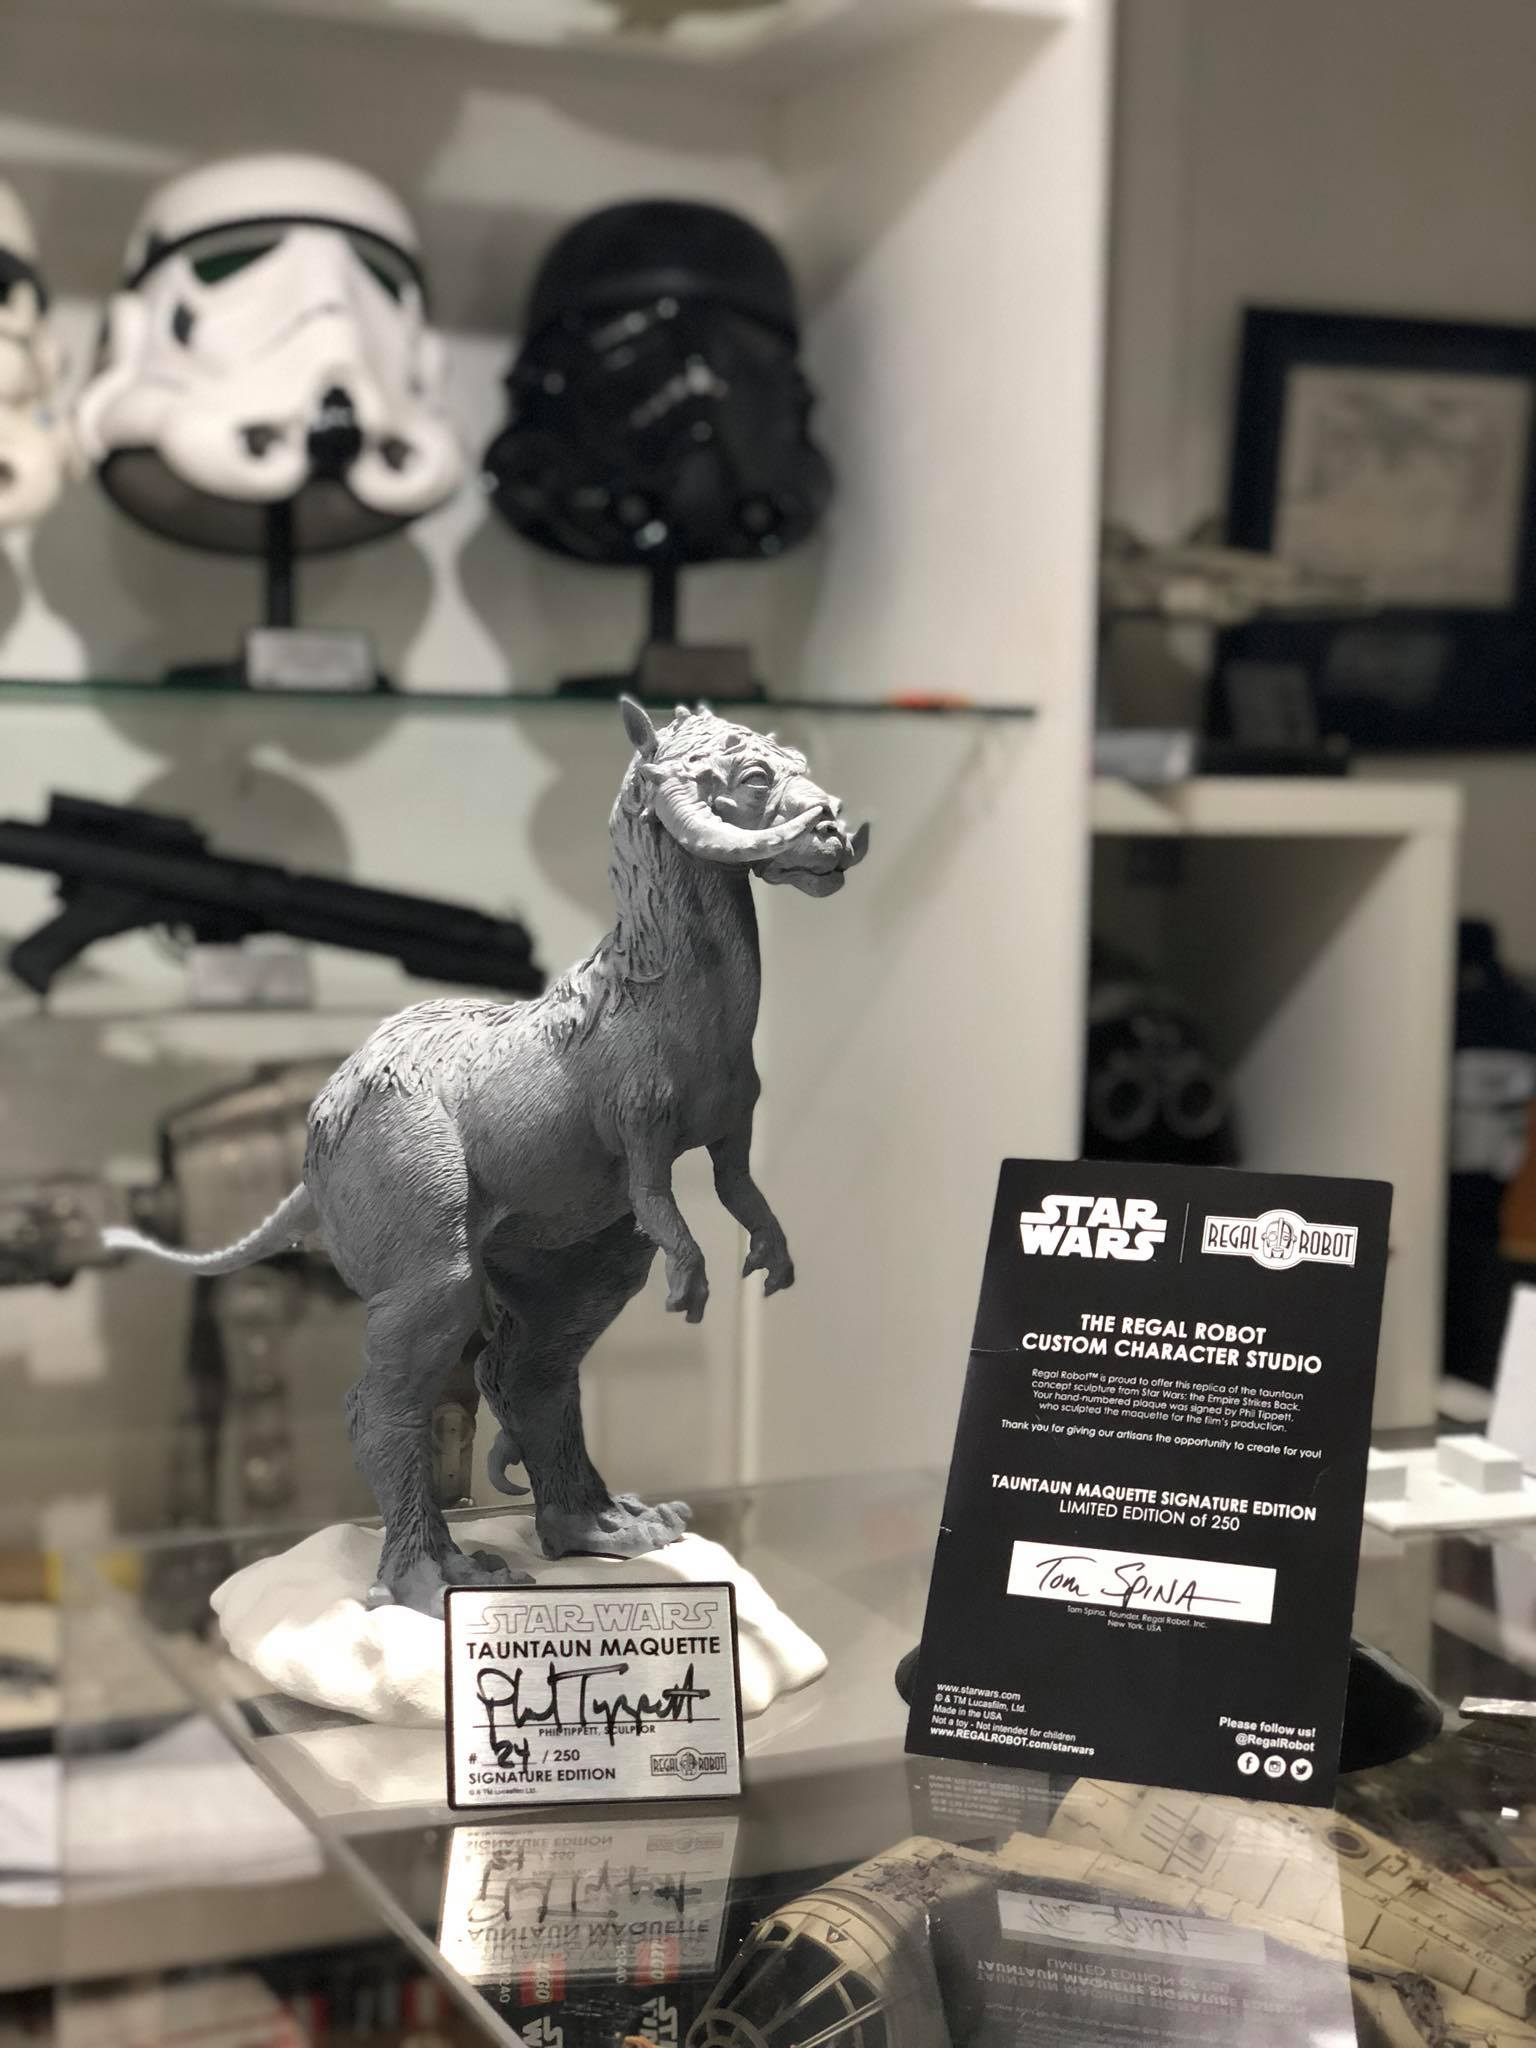 Star Wars Tauntaun statue with autograph